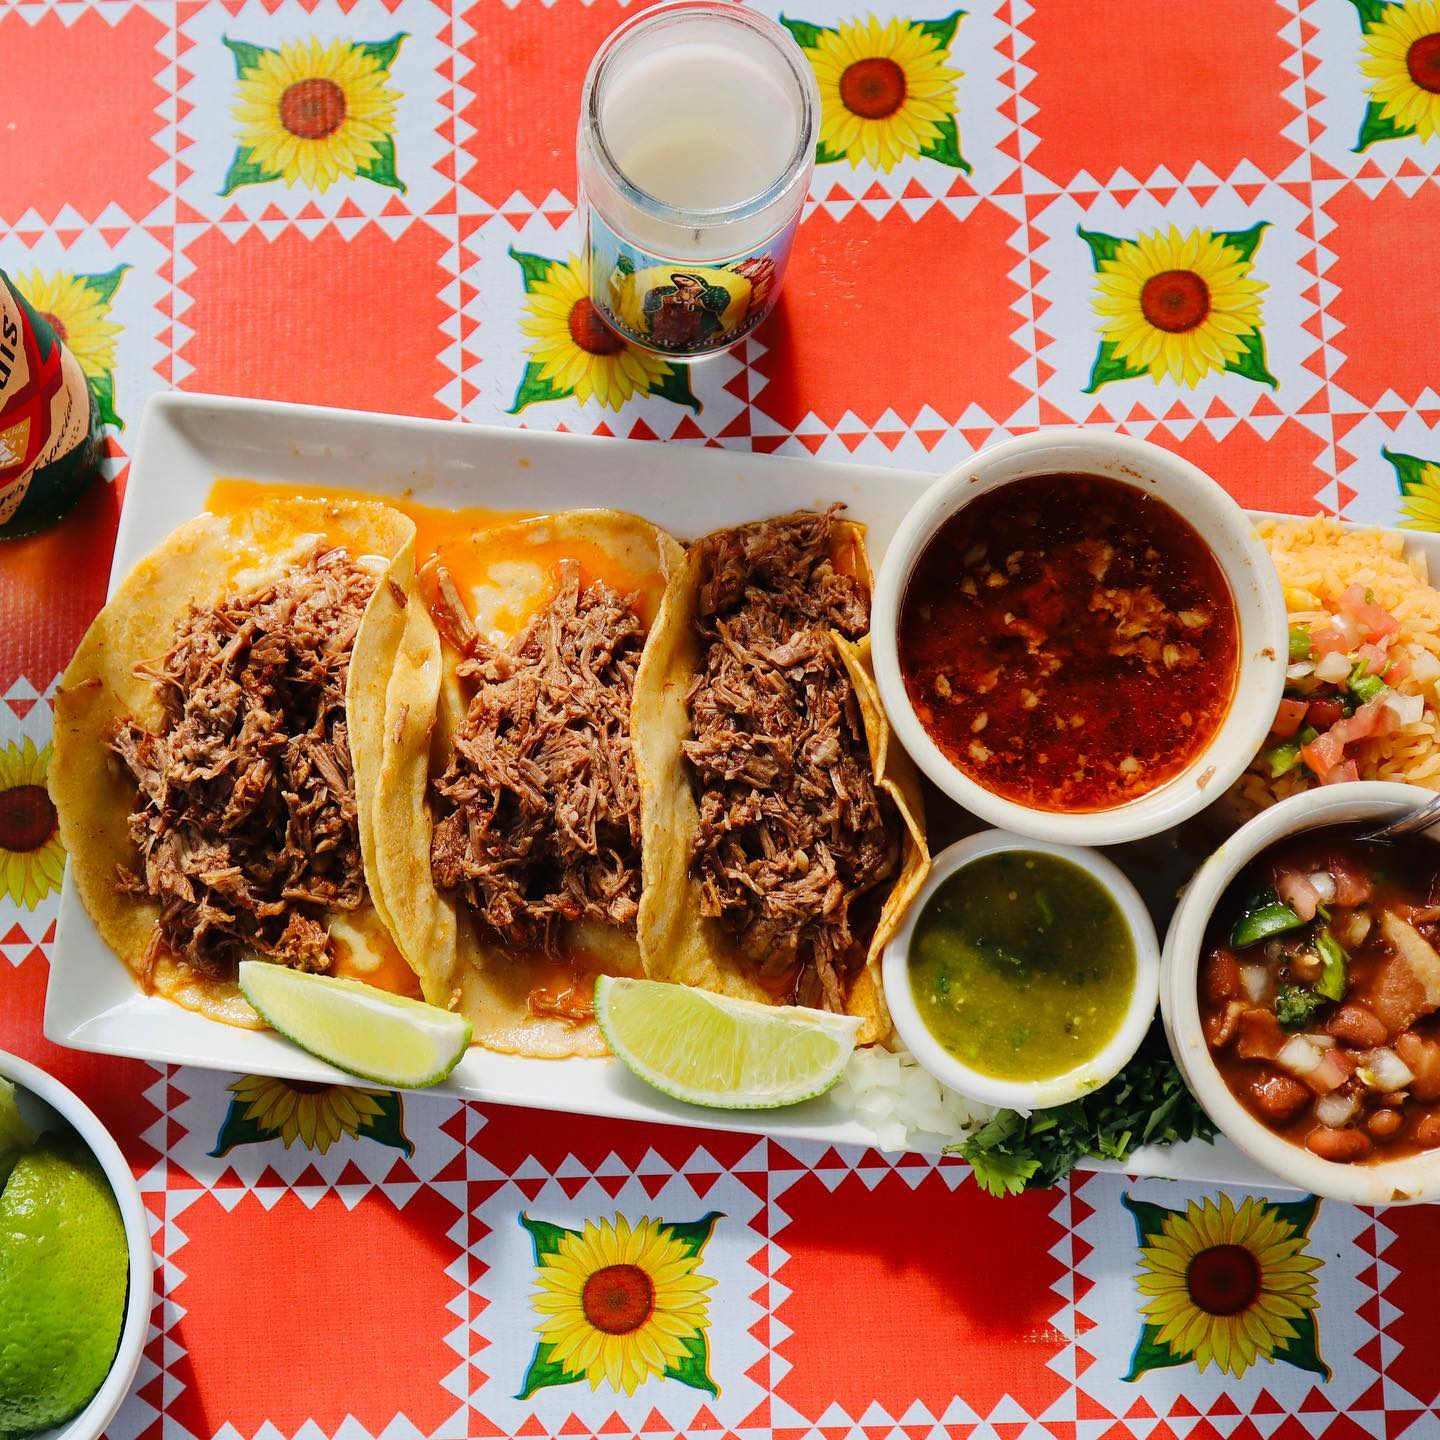 Overhead shot of three tacos with limes on a printed red tablecloth with sunflowers